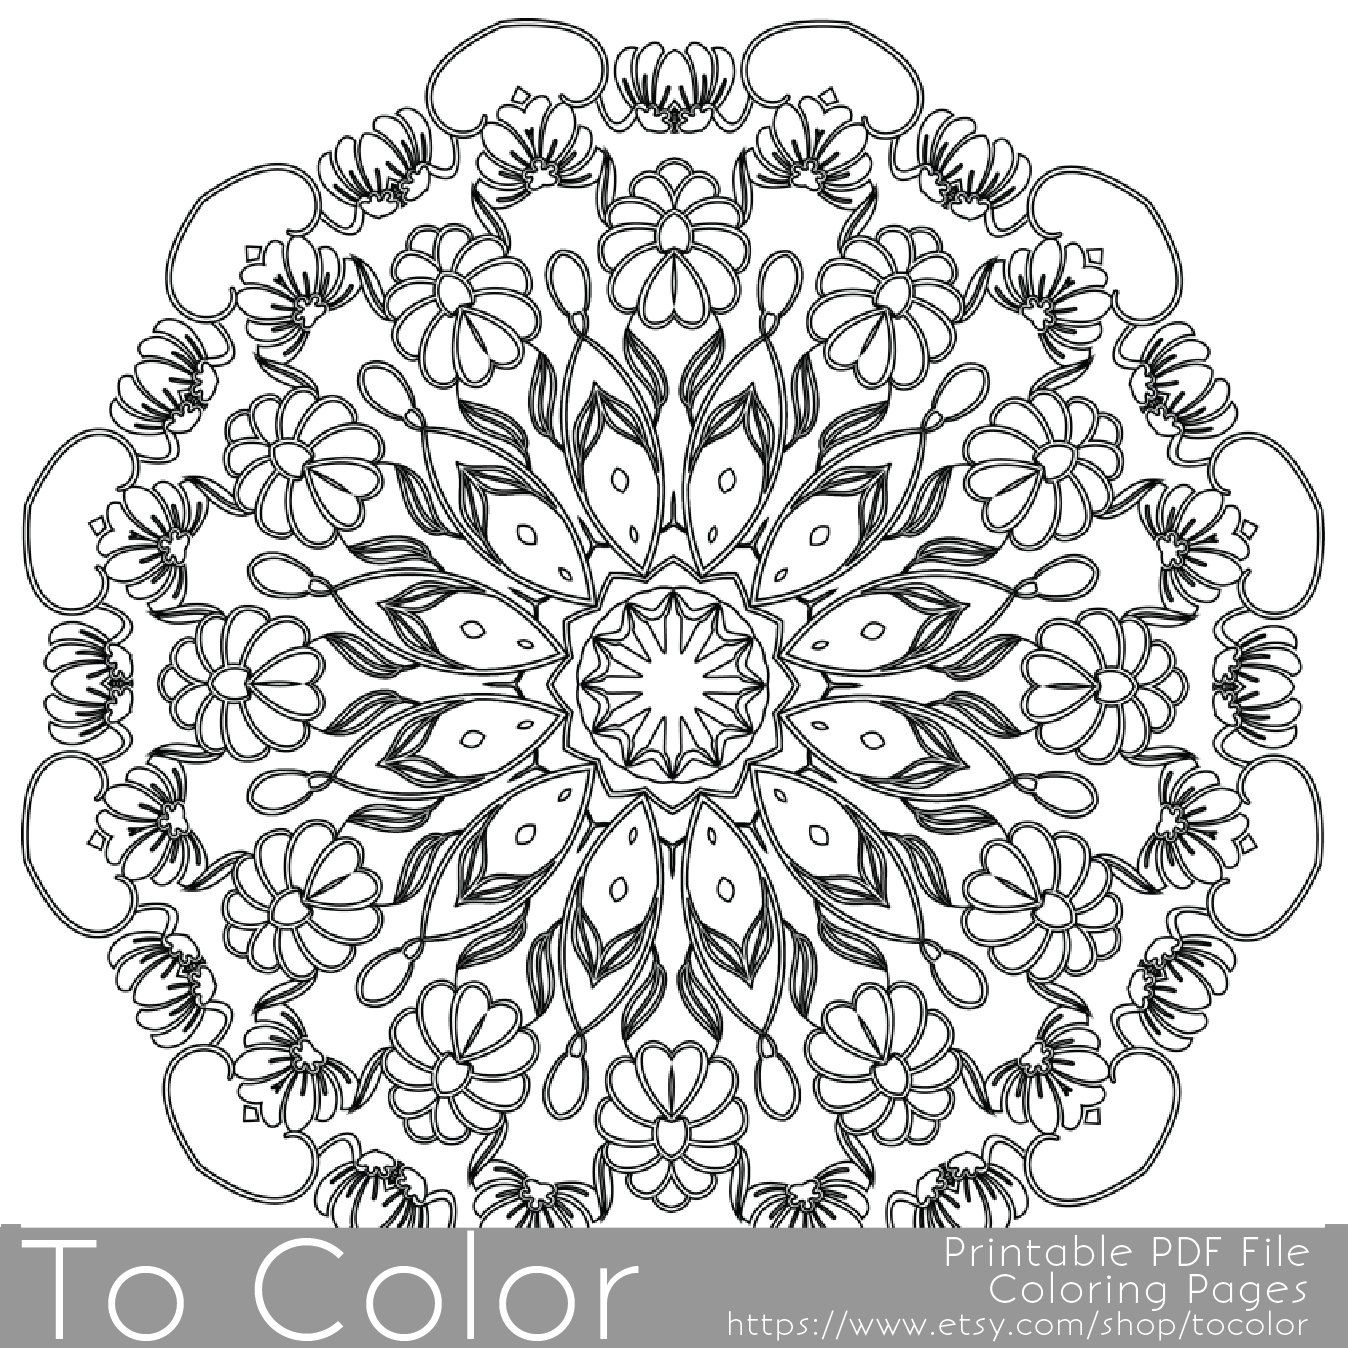 Intricate Cat Coloring Pages : Intricate coloring pages for adults cat